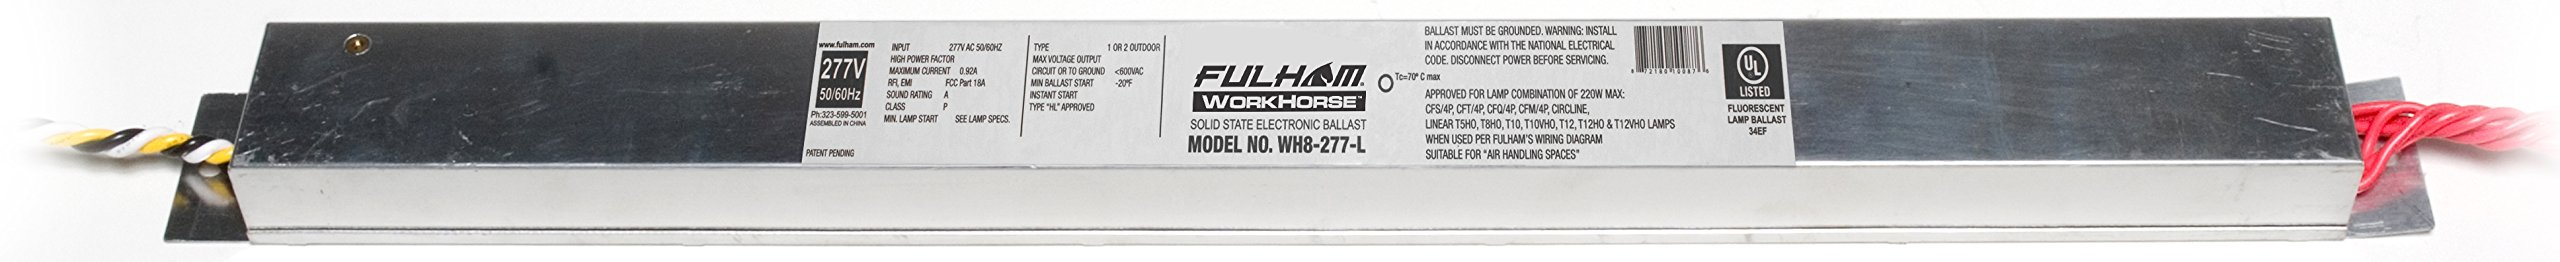 Fulham WH8-277-L Workhorse Adaptable Ballast